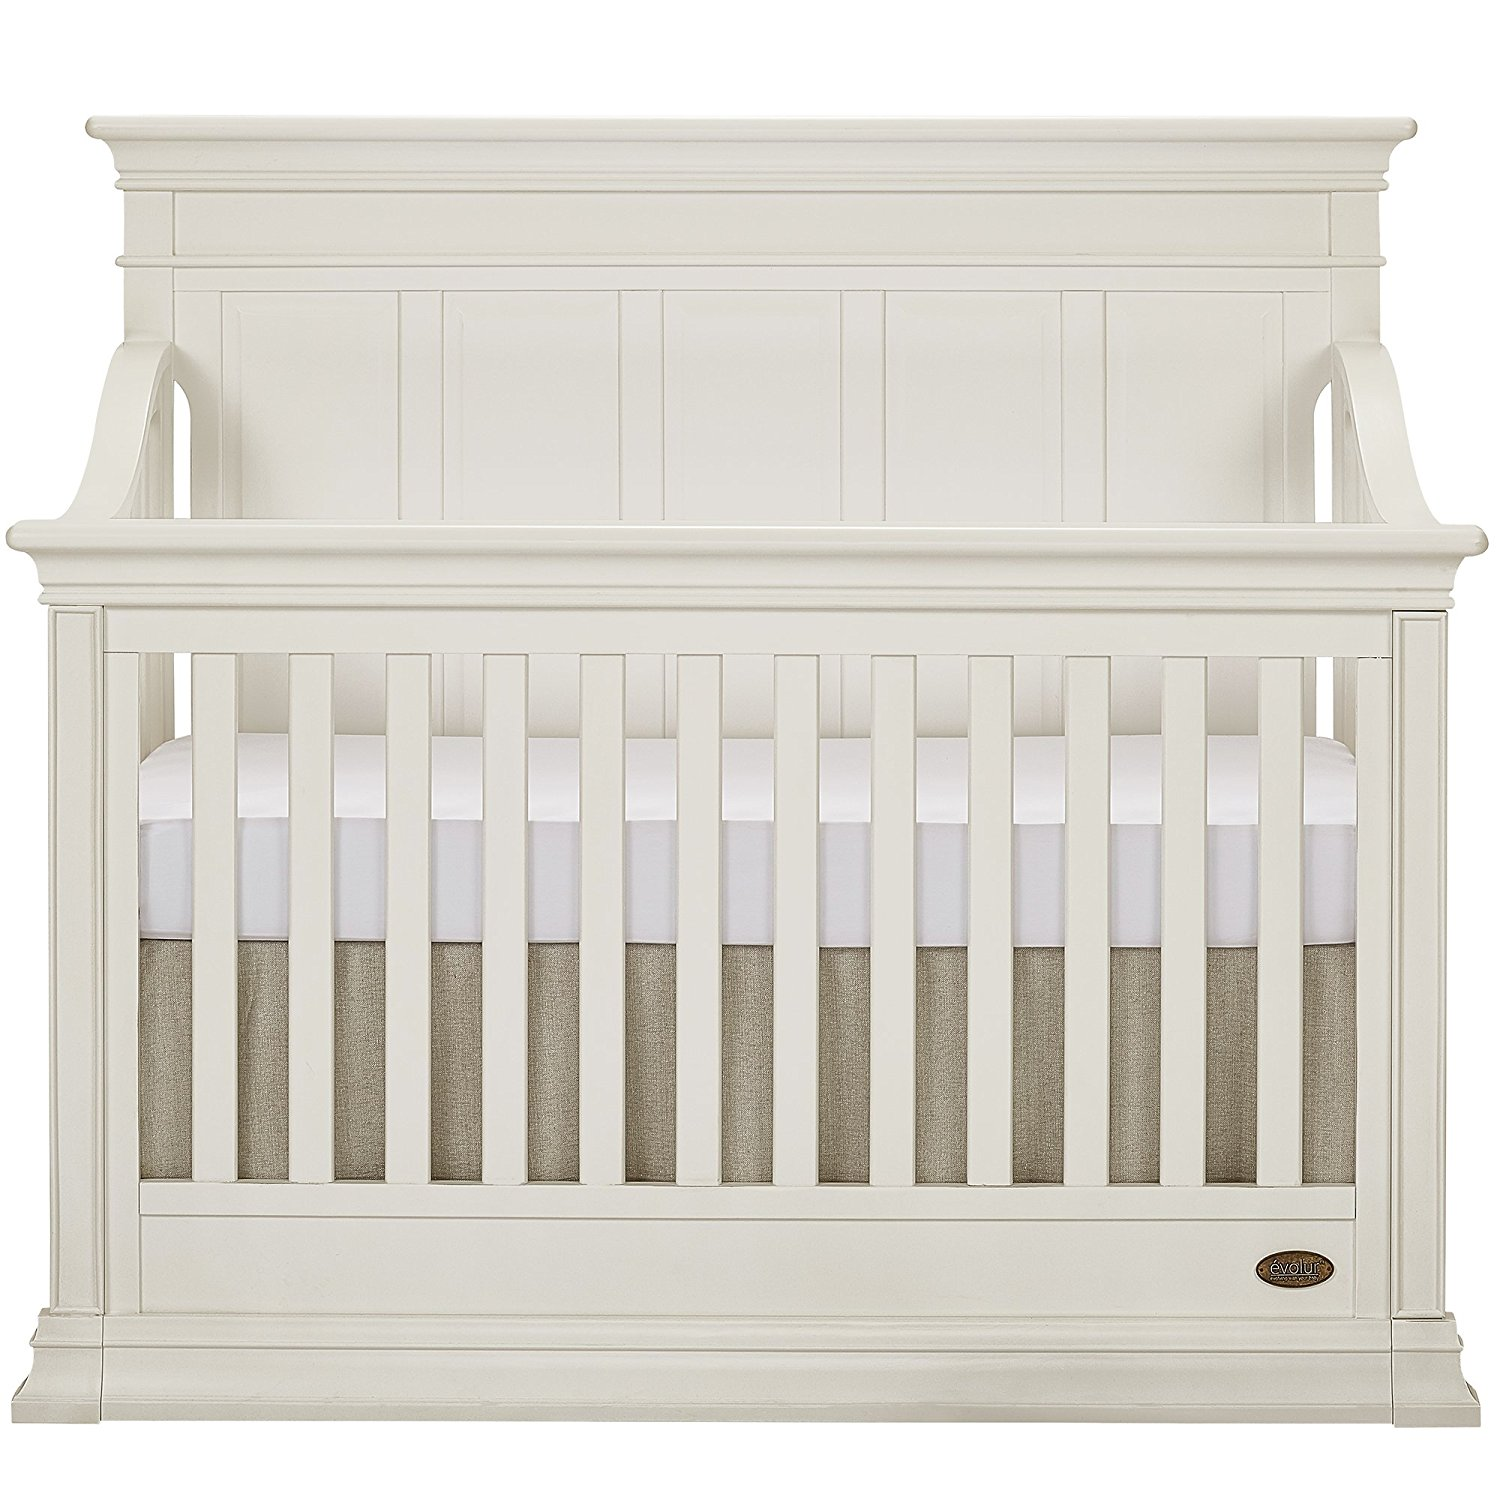 Charming Baby Cache Heritage Lifetime Convertible Crib for Best Baby Crib Choice: Baby Cache Heritage Lifetime Convertible Crib | Baby Cache Montana Crib Driftwood | Baby Cache Manhattan Crib